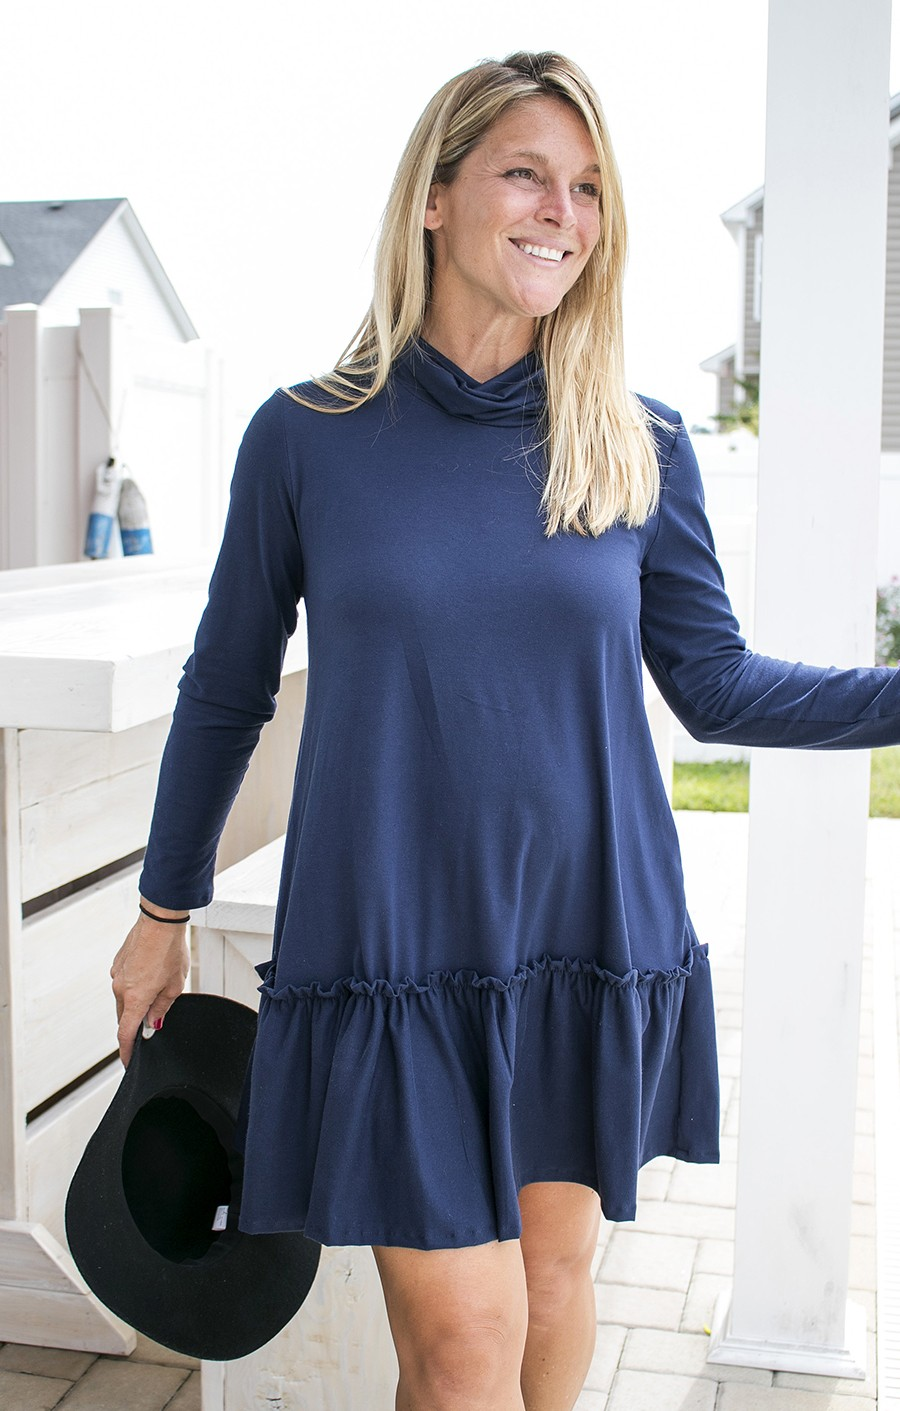 MAKE THIS LOOK: New Look Pattern 6525